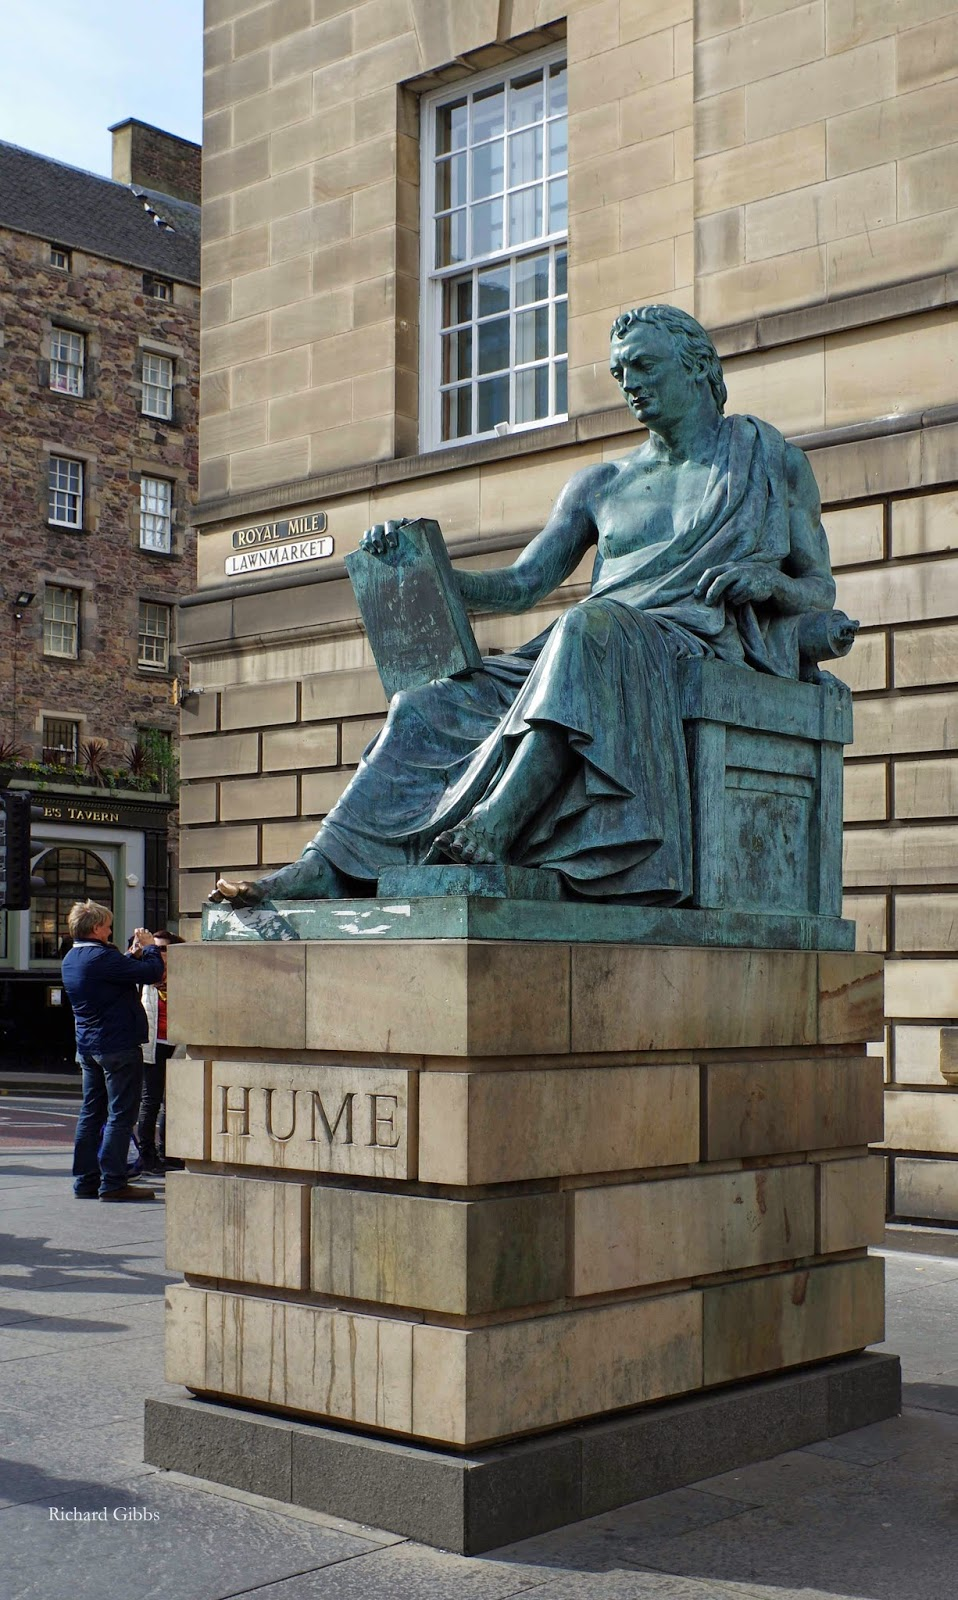 essays and diversions edinburgh david hume lawnmarket